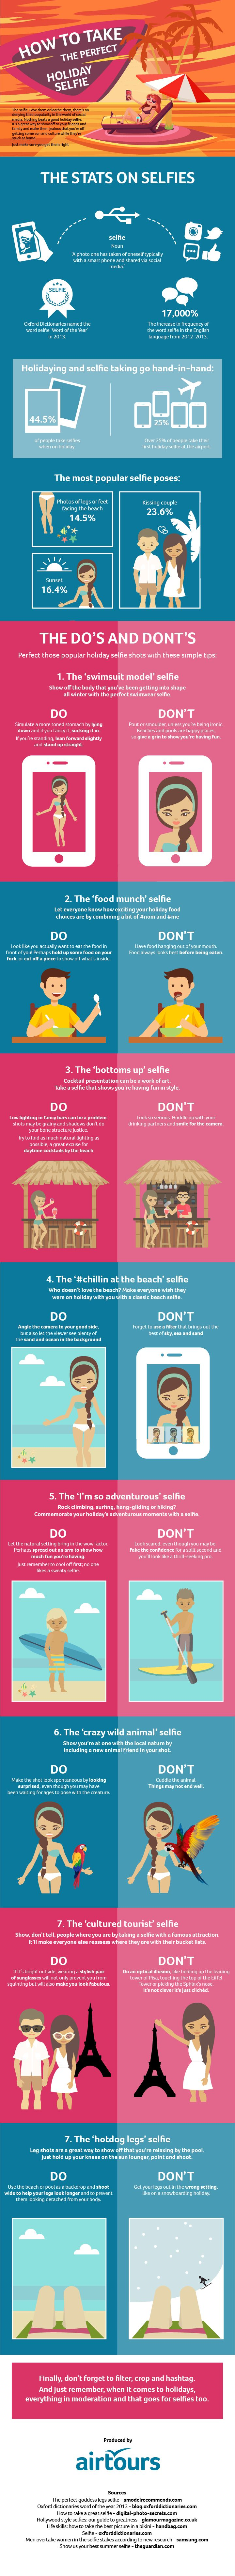 Going on holiday? Forget sending a postcard, these days it's all about the selfie! Don't get me wrong we're all still guilty of snapping the…